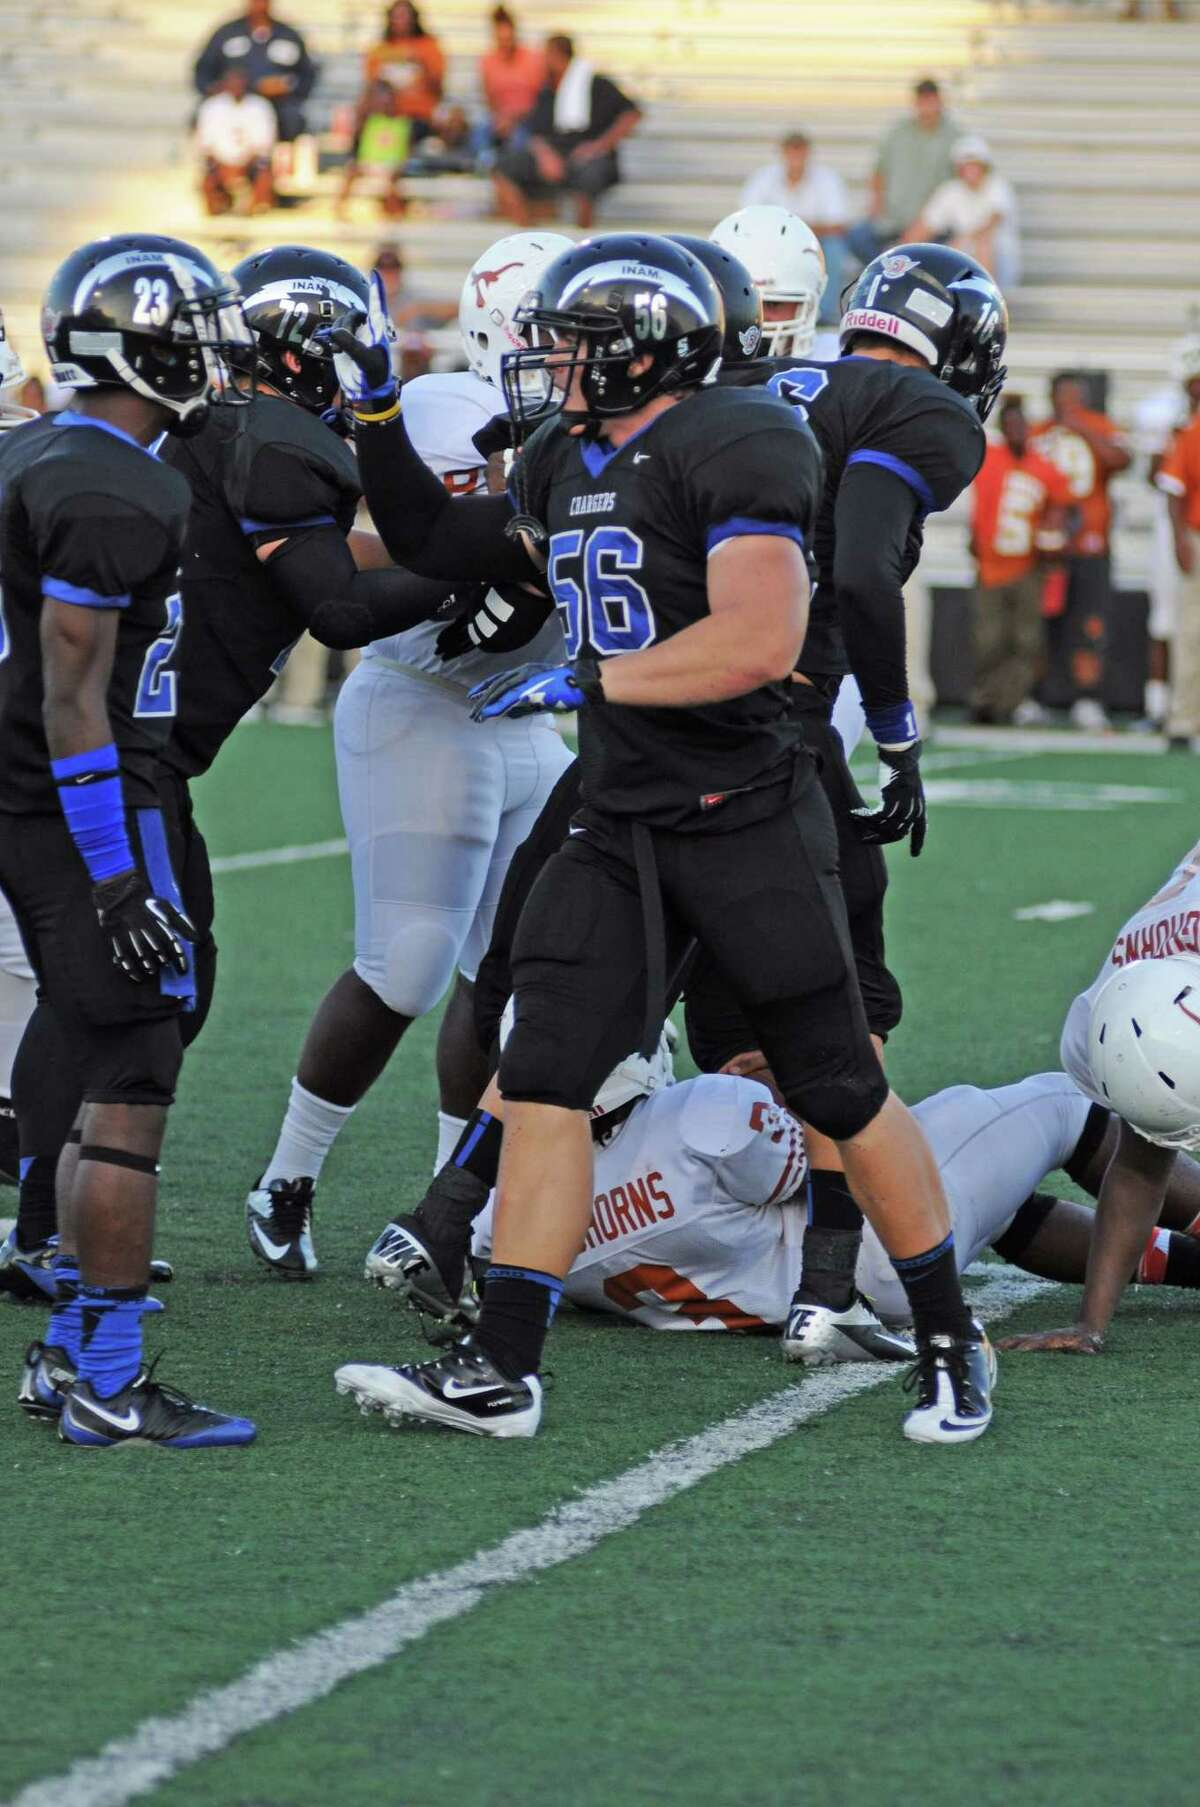 Clear Springs senior defender Cameron Doubenmier, No. 56, gets his fellow Chargers fired up after making a tackle during a recent non-district game against Dobie at Clear Creek ISD Veterans Memorial Stadium.